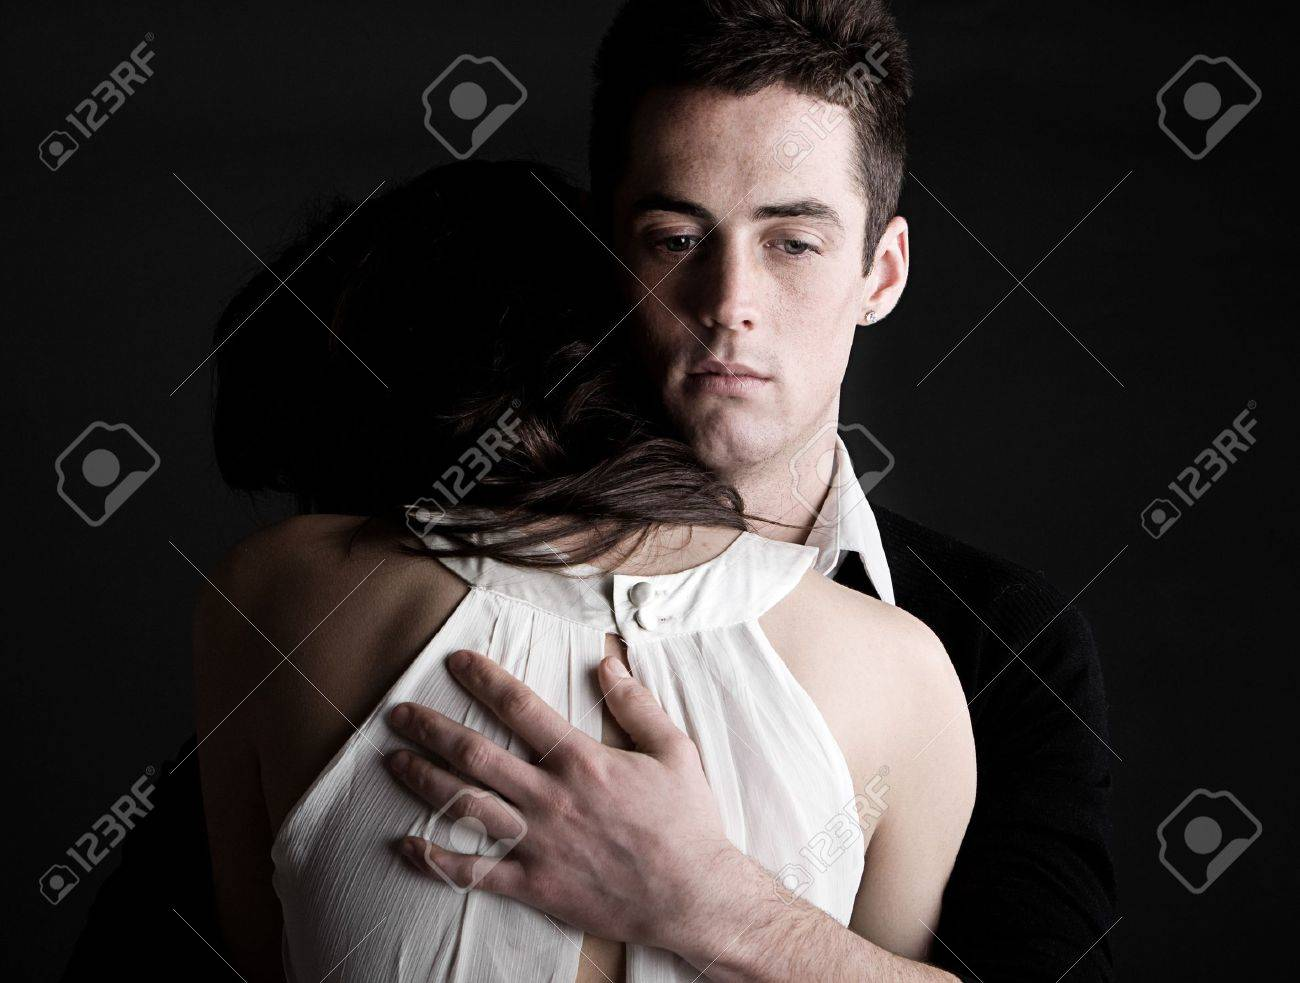 Powerful Shot of a Young Couple Embracing Stock Photo - 6593944